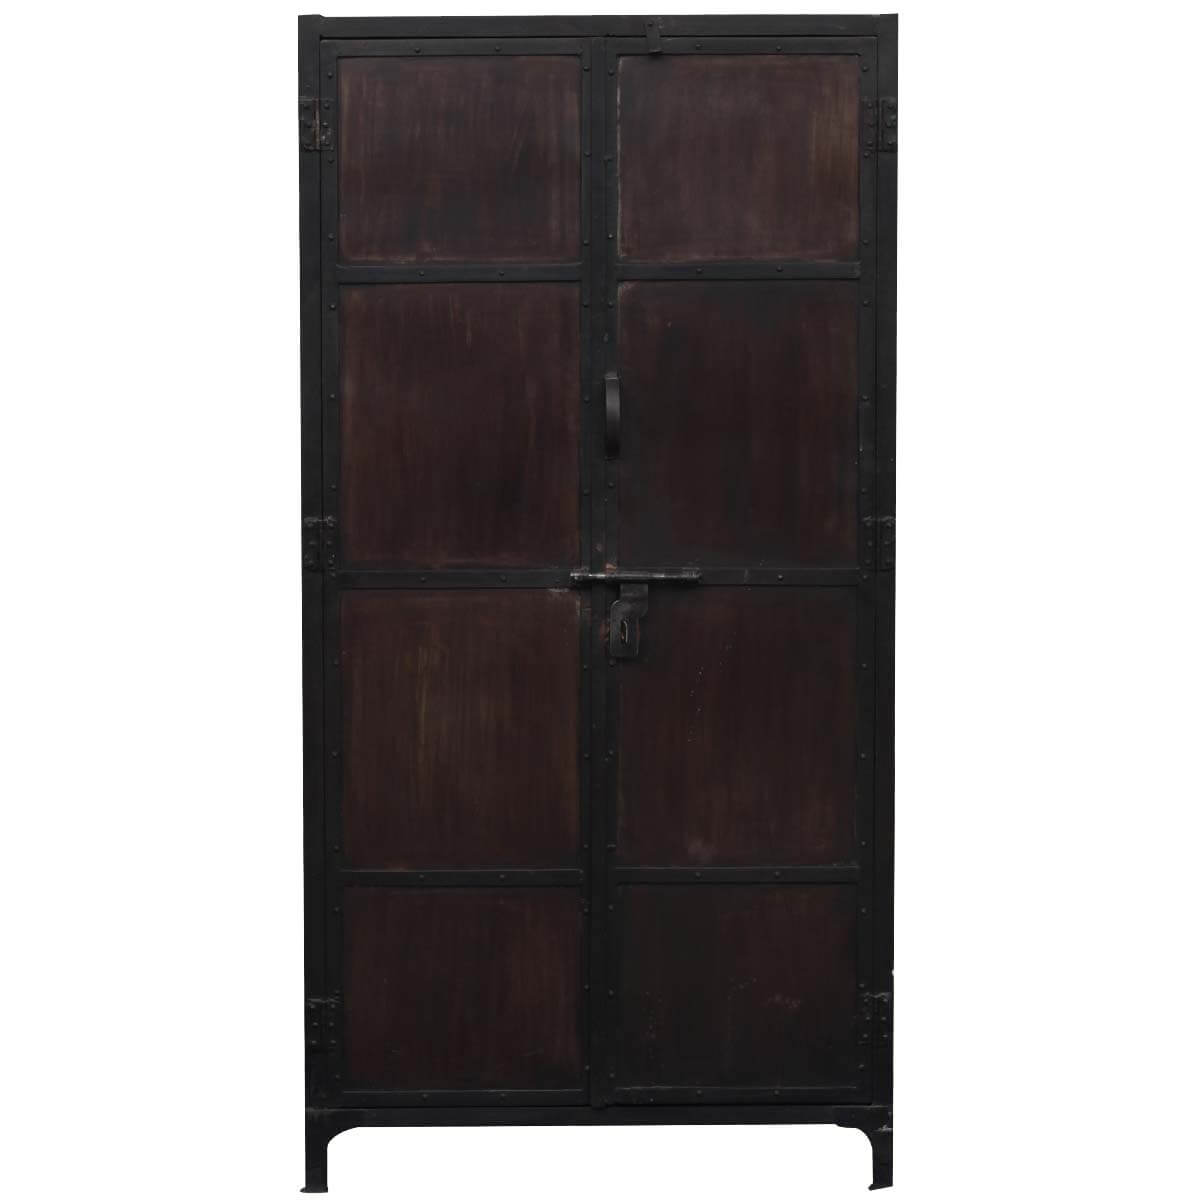 Large Industrial Black amp Brown Iron Armoire Storage Cabinet